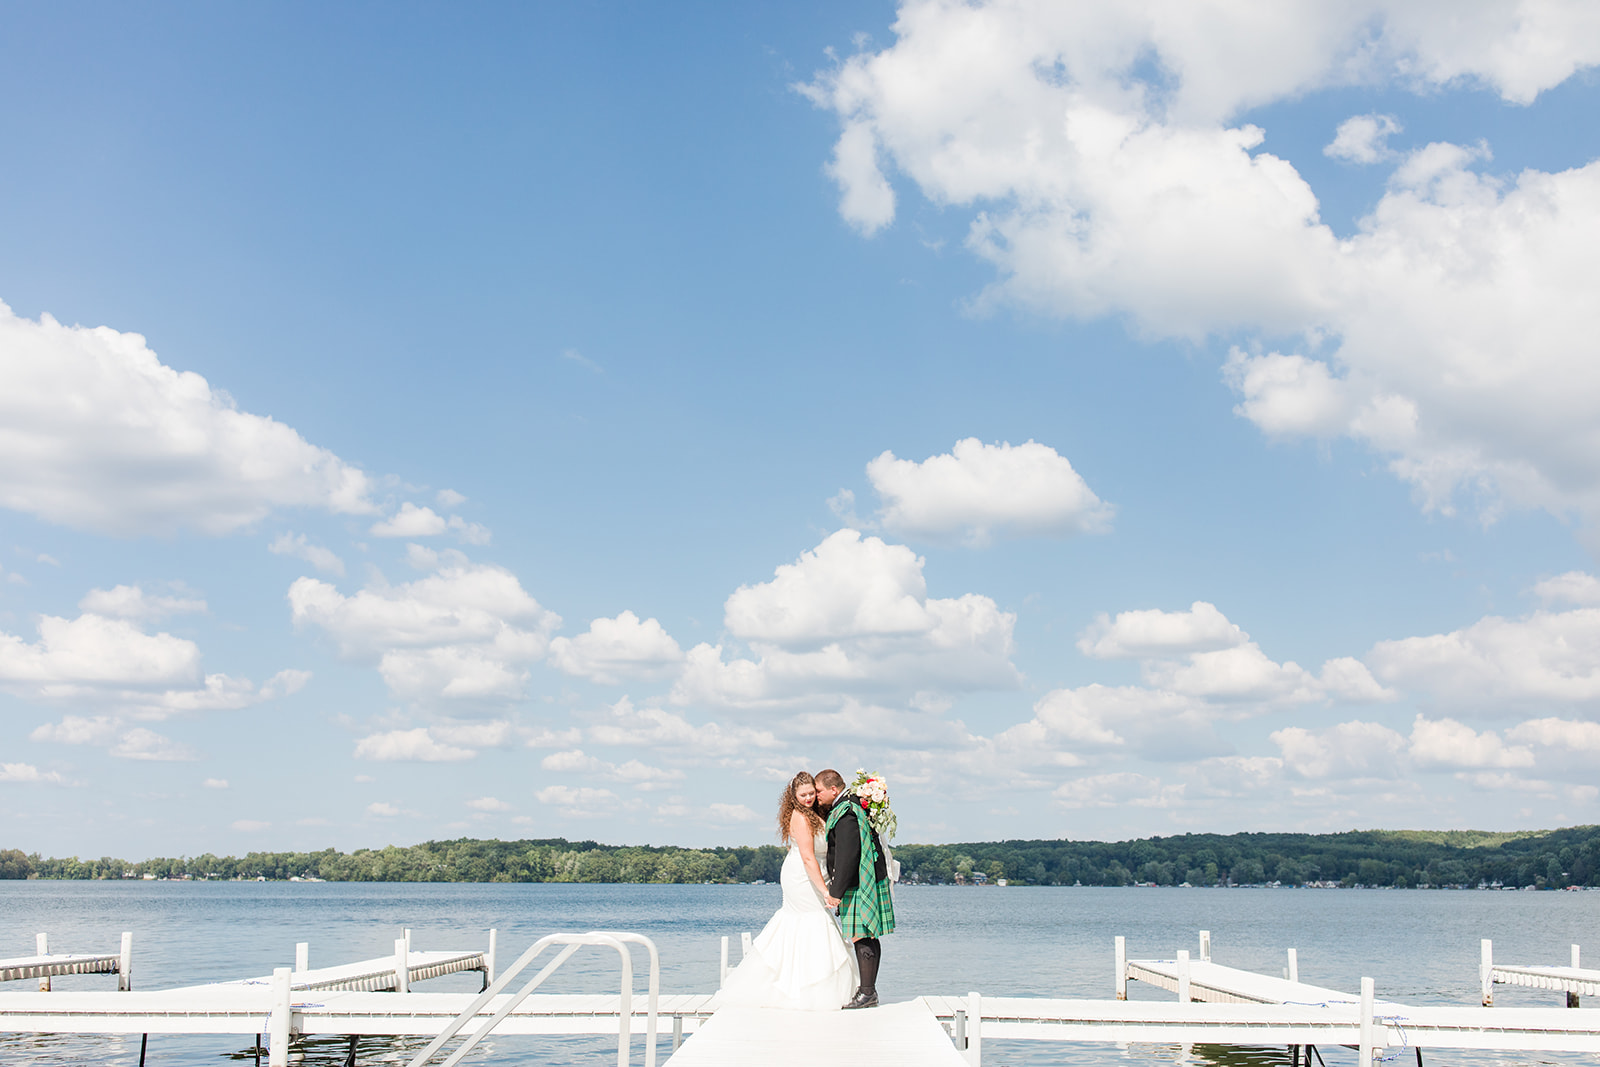 Newlyweds smiling on the docks during a Bay Pointe Inn wedding in Shelbyville, Michigan